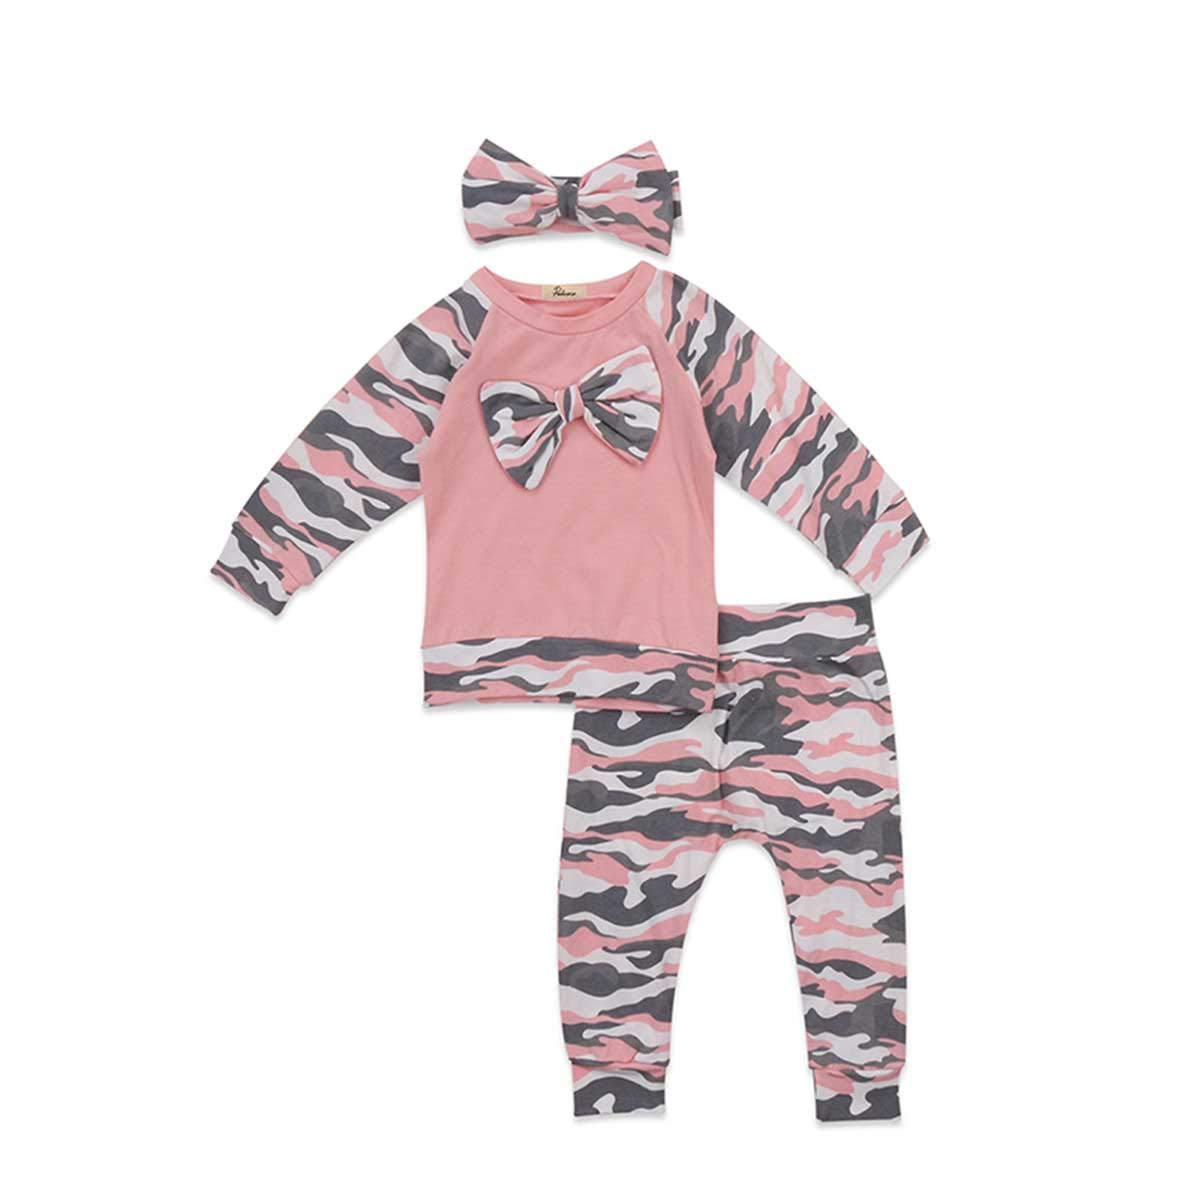 Newborn Baby Girls Bodysuit Short-Sleeve Onesie Creative Tiger Wear Glasses Print Rompers Winter Pajamas